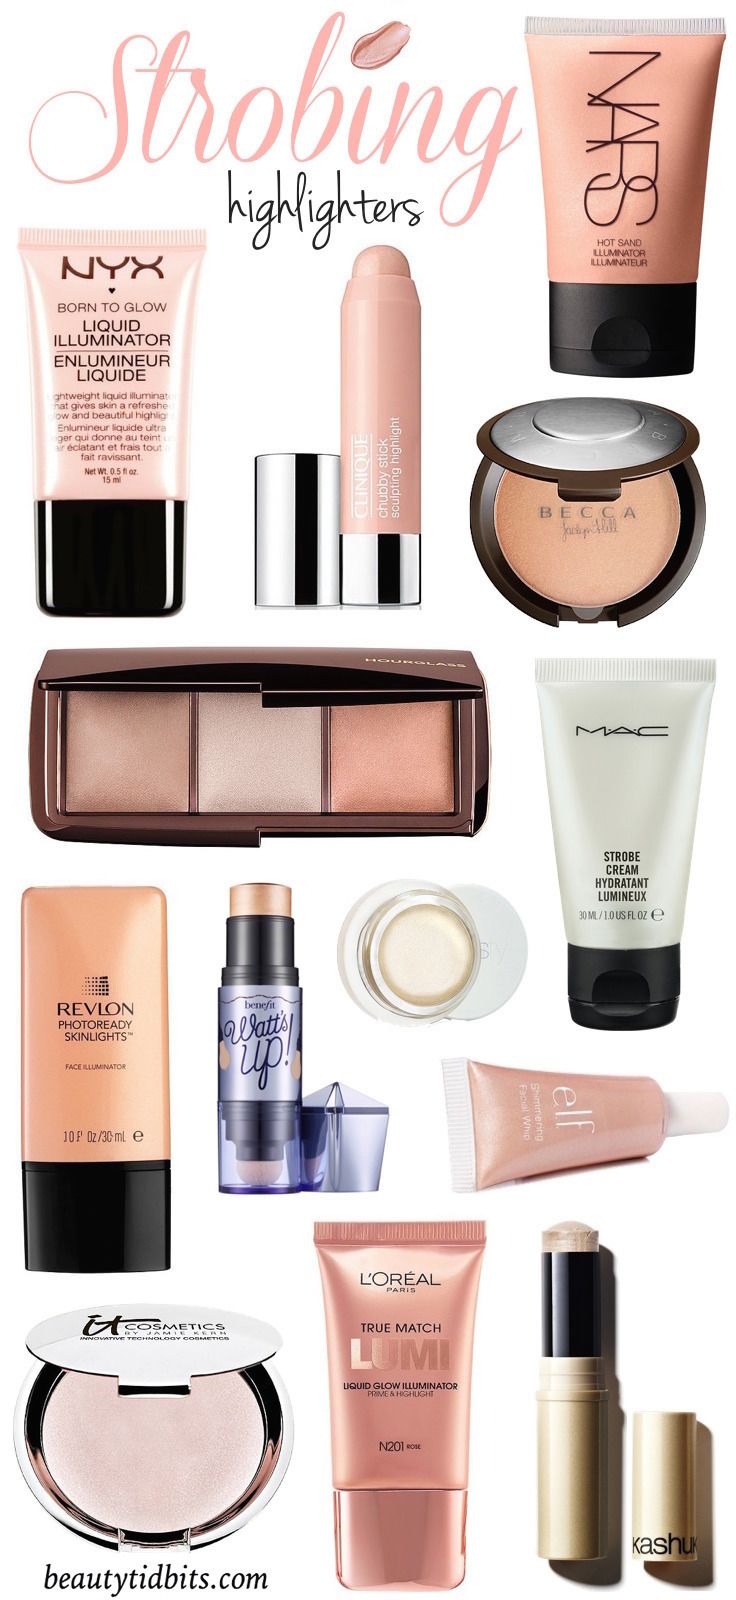 How to apply a highlighter for strobing & the best products to use! #makeuptips